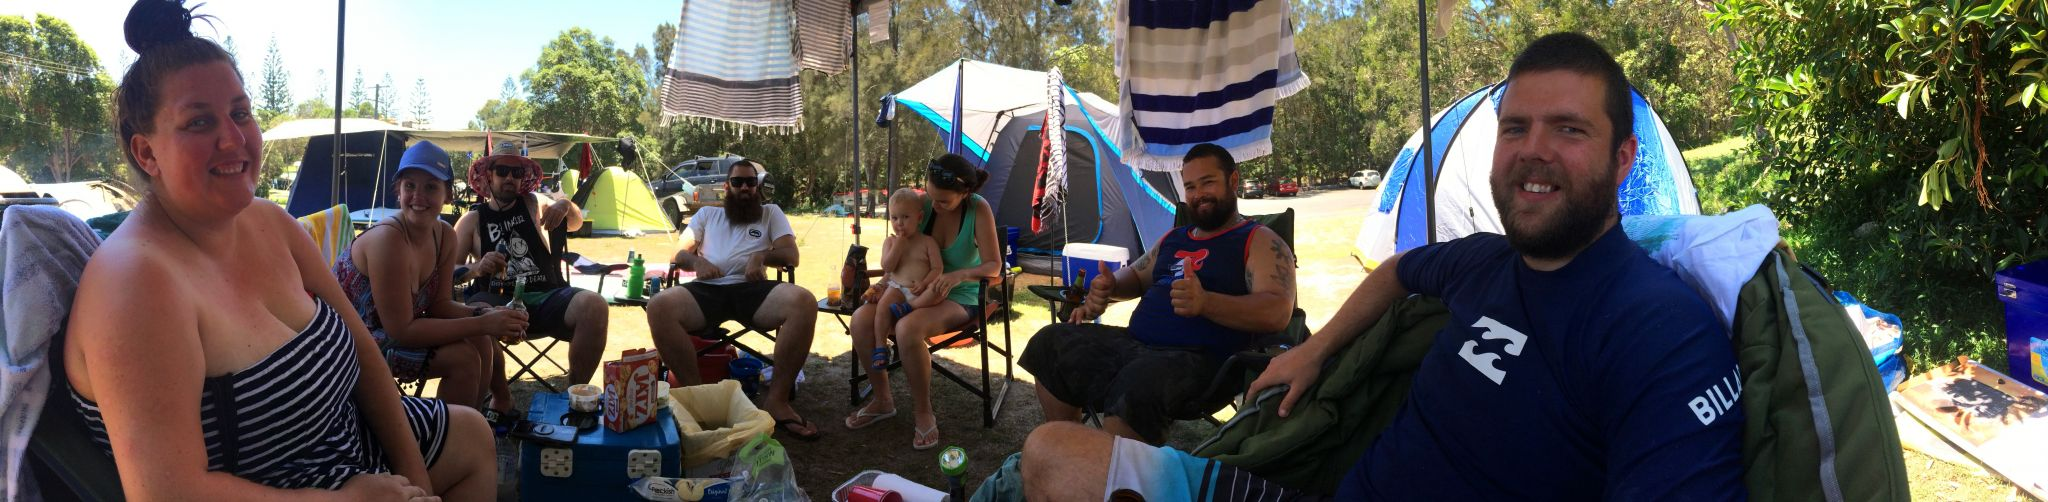 Group at campsite in Trial Bay